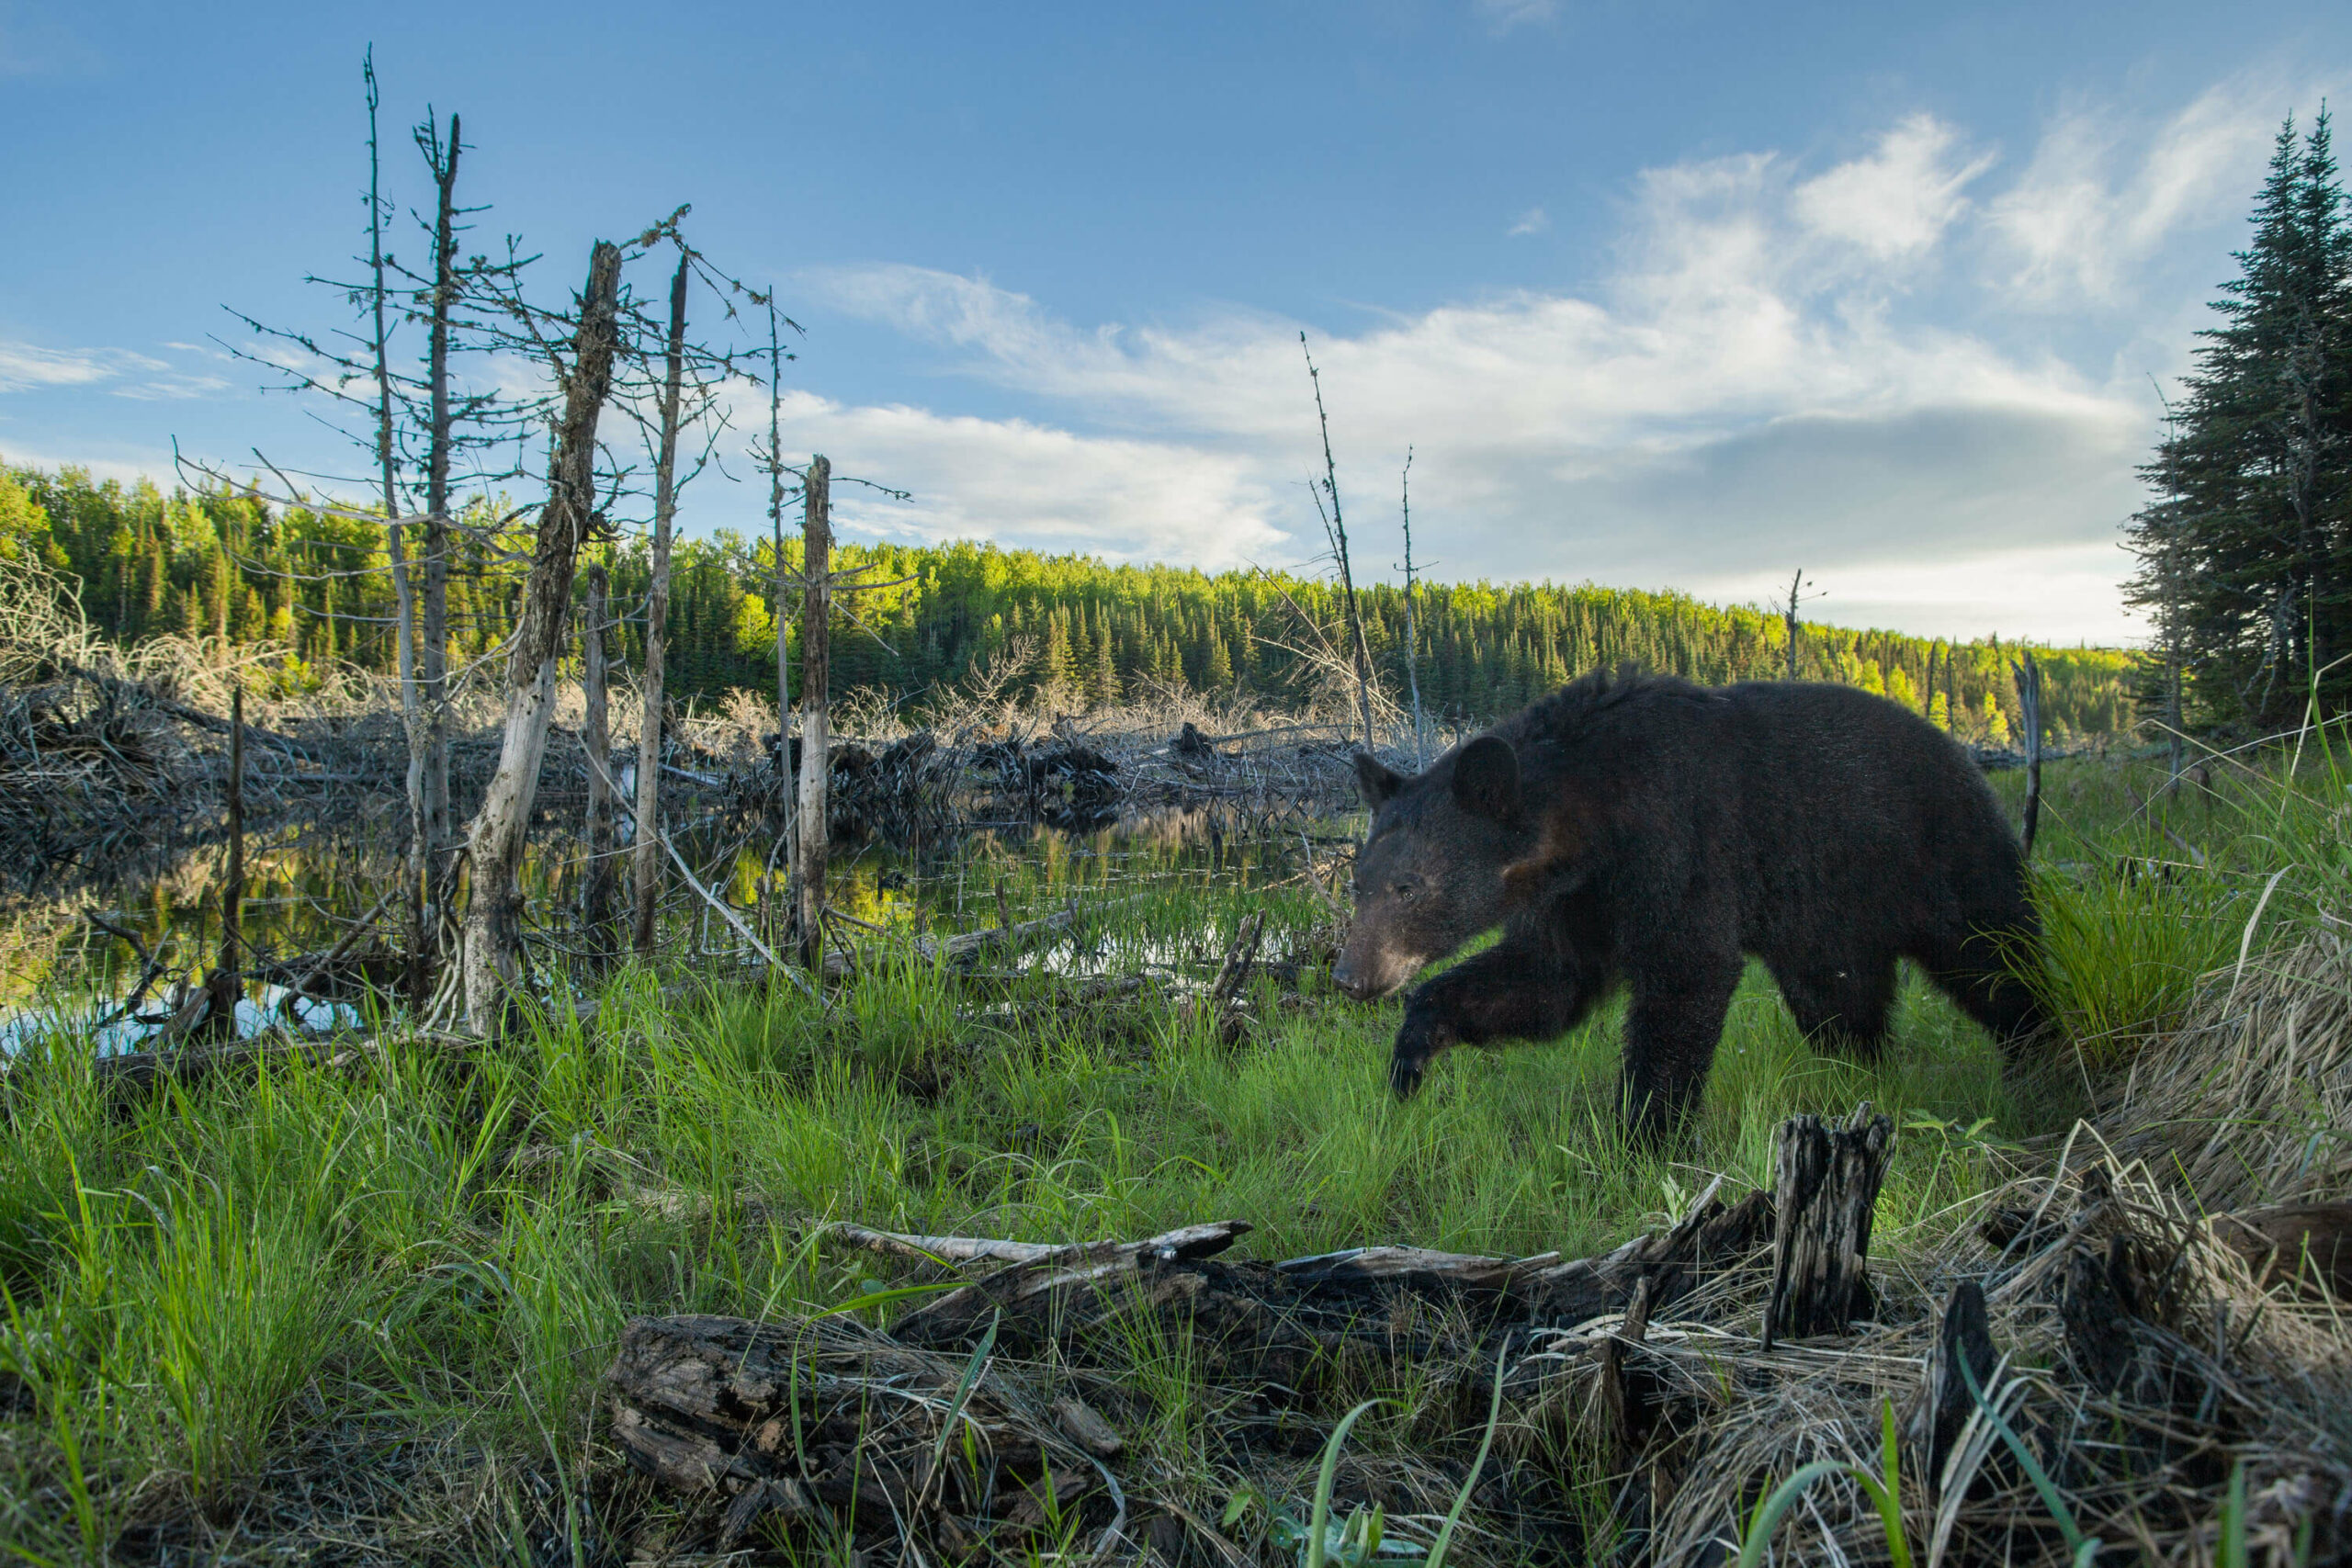 Image of a bear in the Boundary Waters